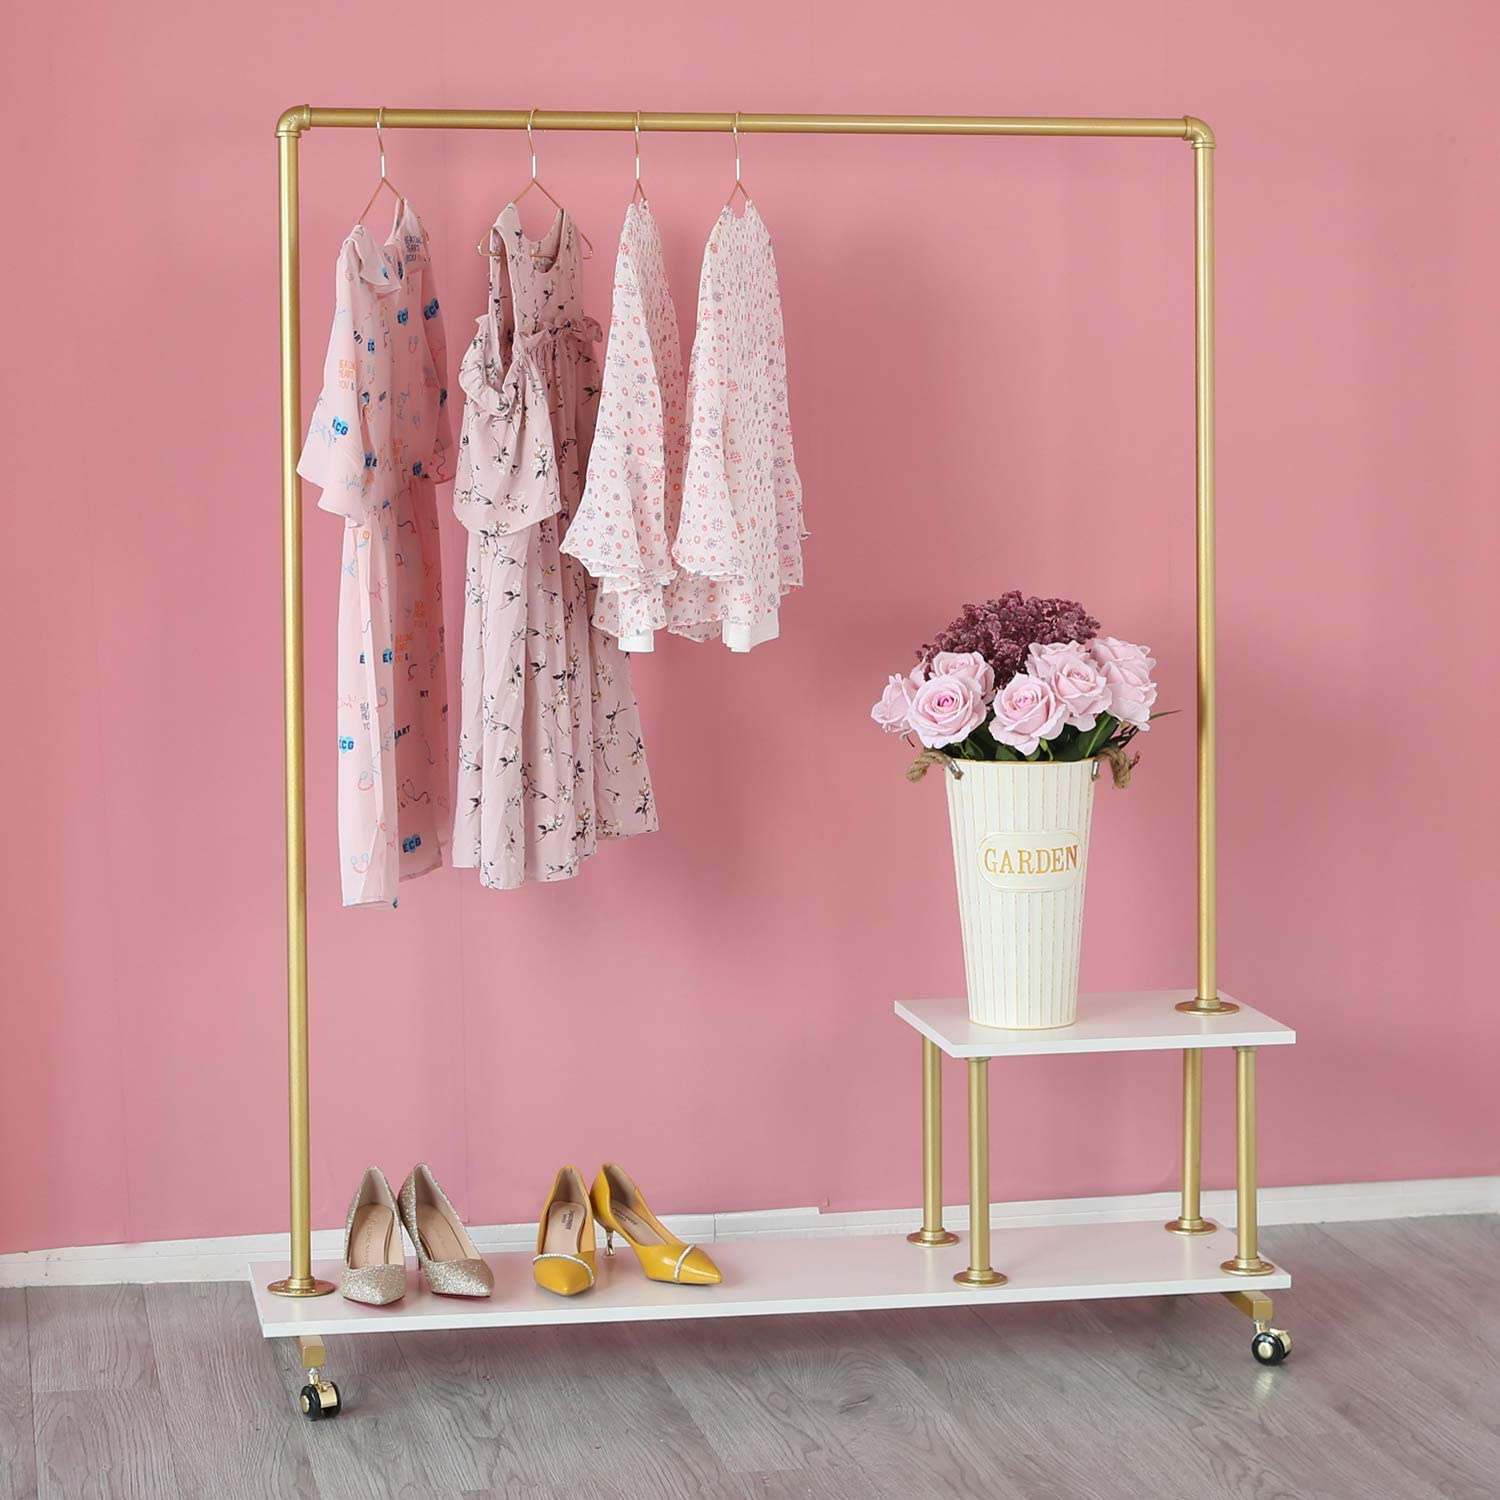 "Gold Metal Clothing Rack with Wood Shelf, Heavy Duty Rolling Garment Rack with Wheels for Bedroom Retail Boutique Use(51.18""H)"